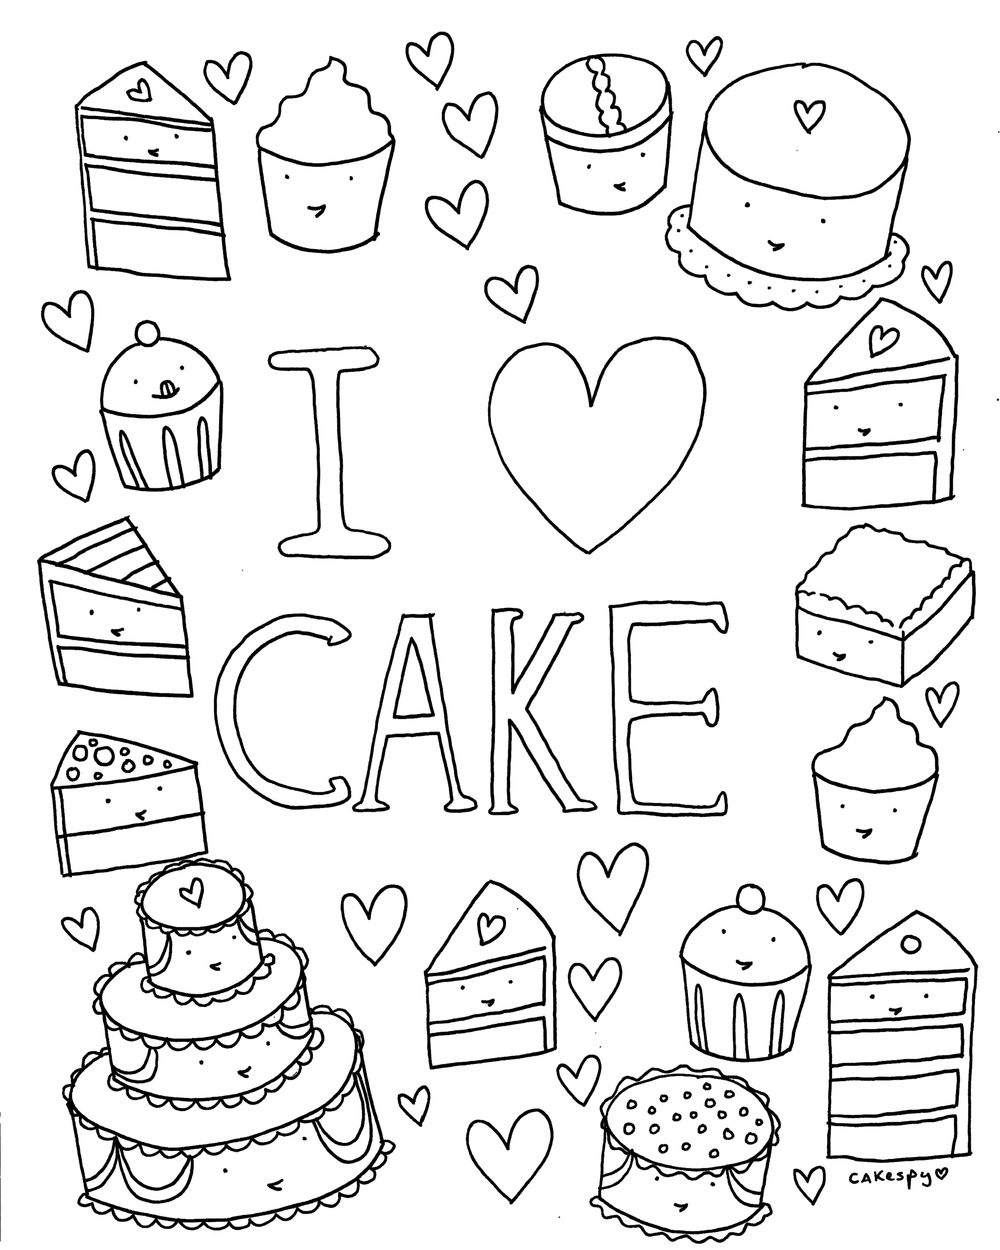 Free Coloring Book Page: I Love Cake — CakeSpy